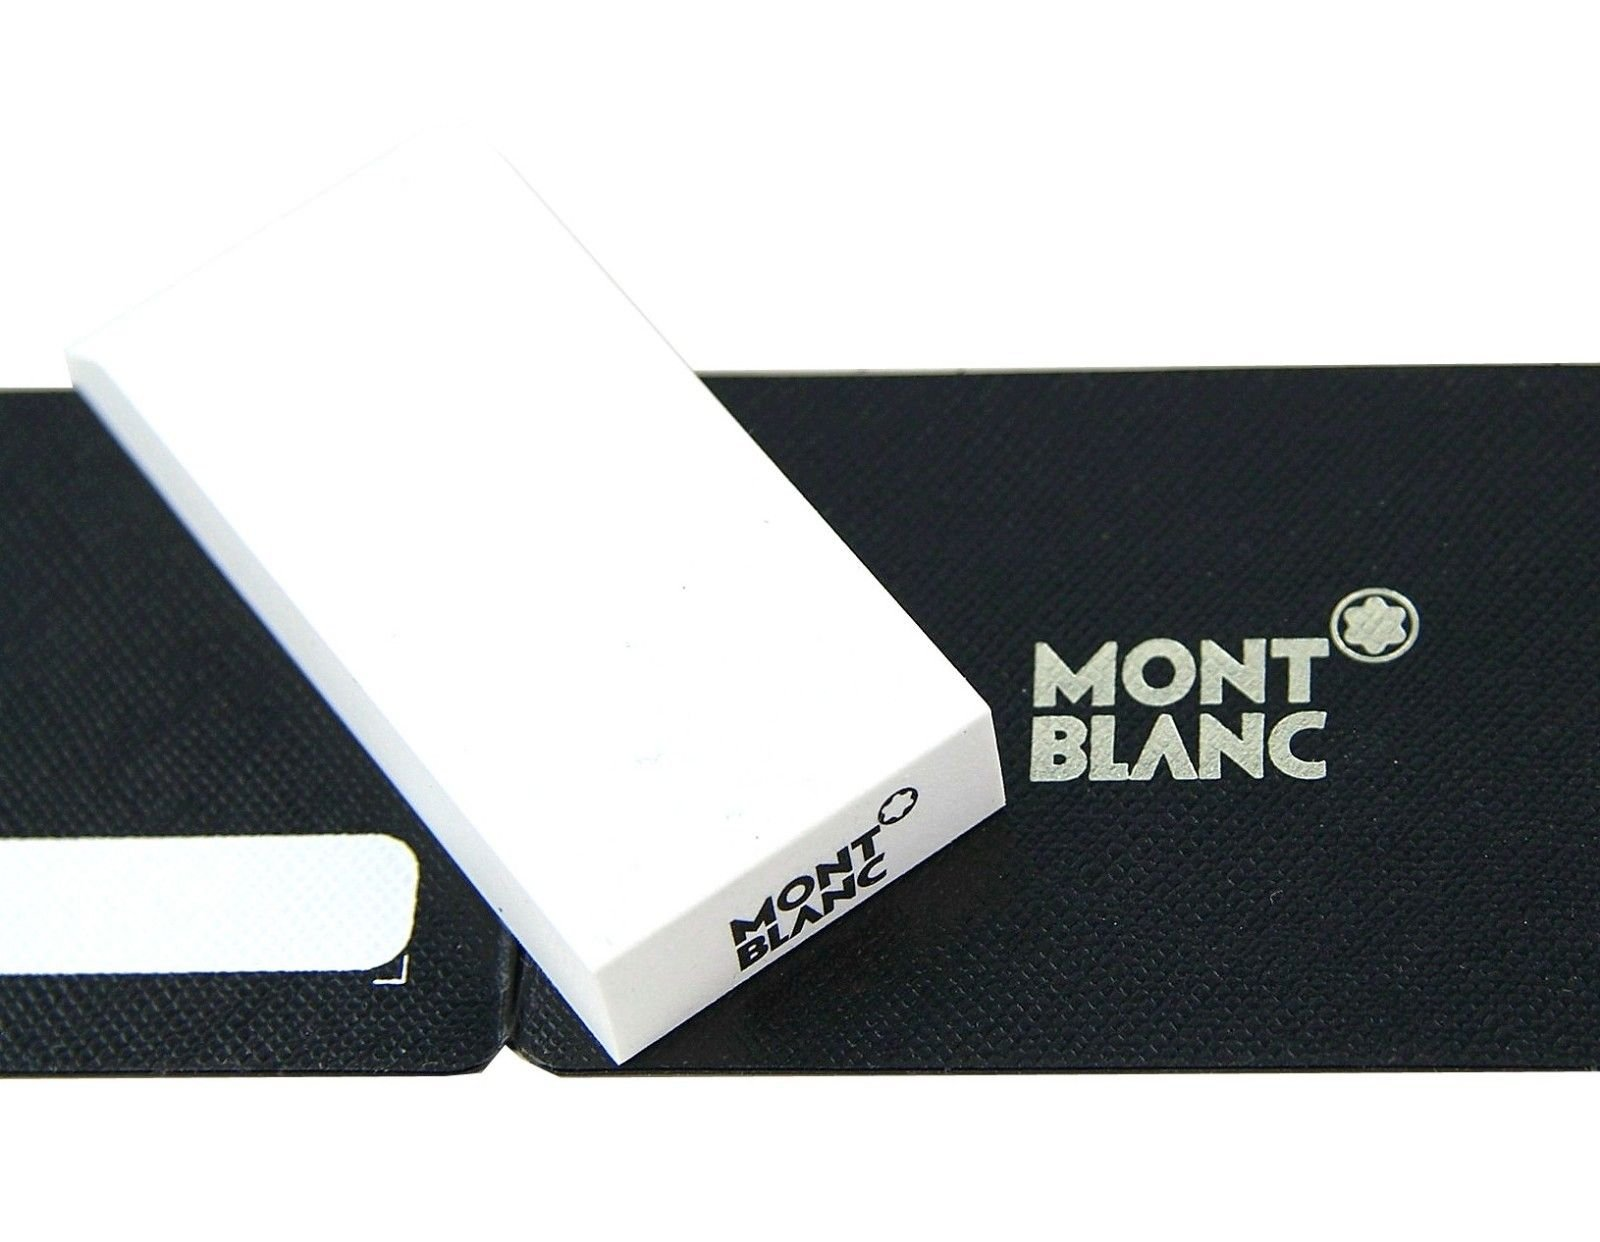 MONTBLANC MEISTERSTUCK ONE GENUINE REFILL WHITE ERASER WITH LOGO GERMANY 101312 by MONTBLANC (Image #2)